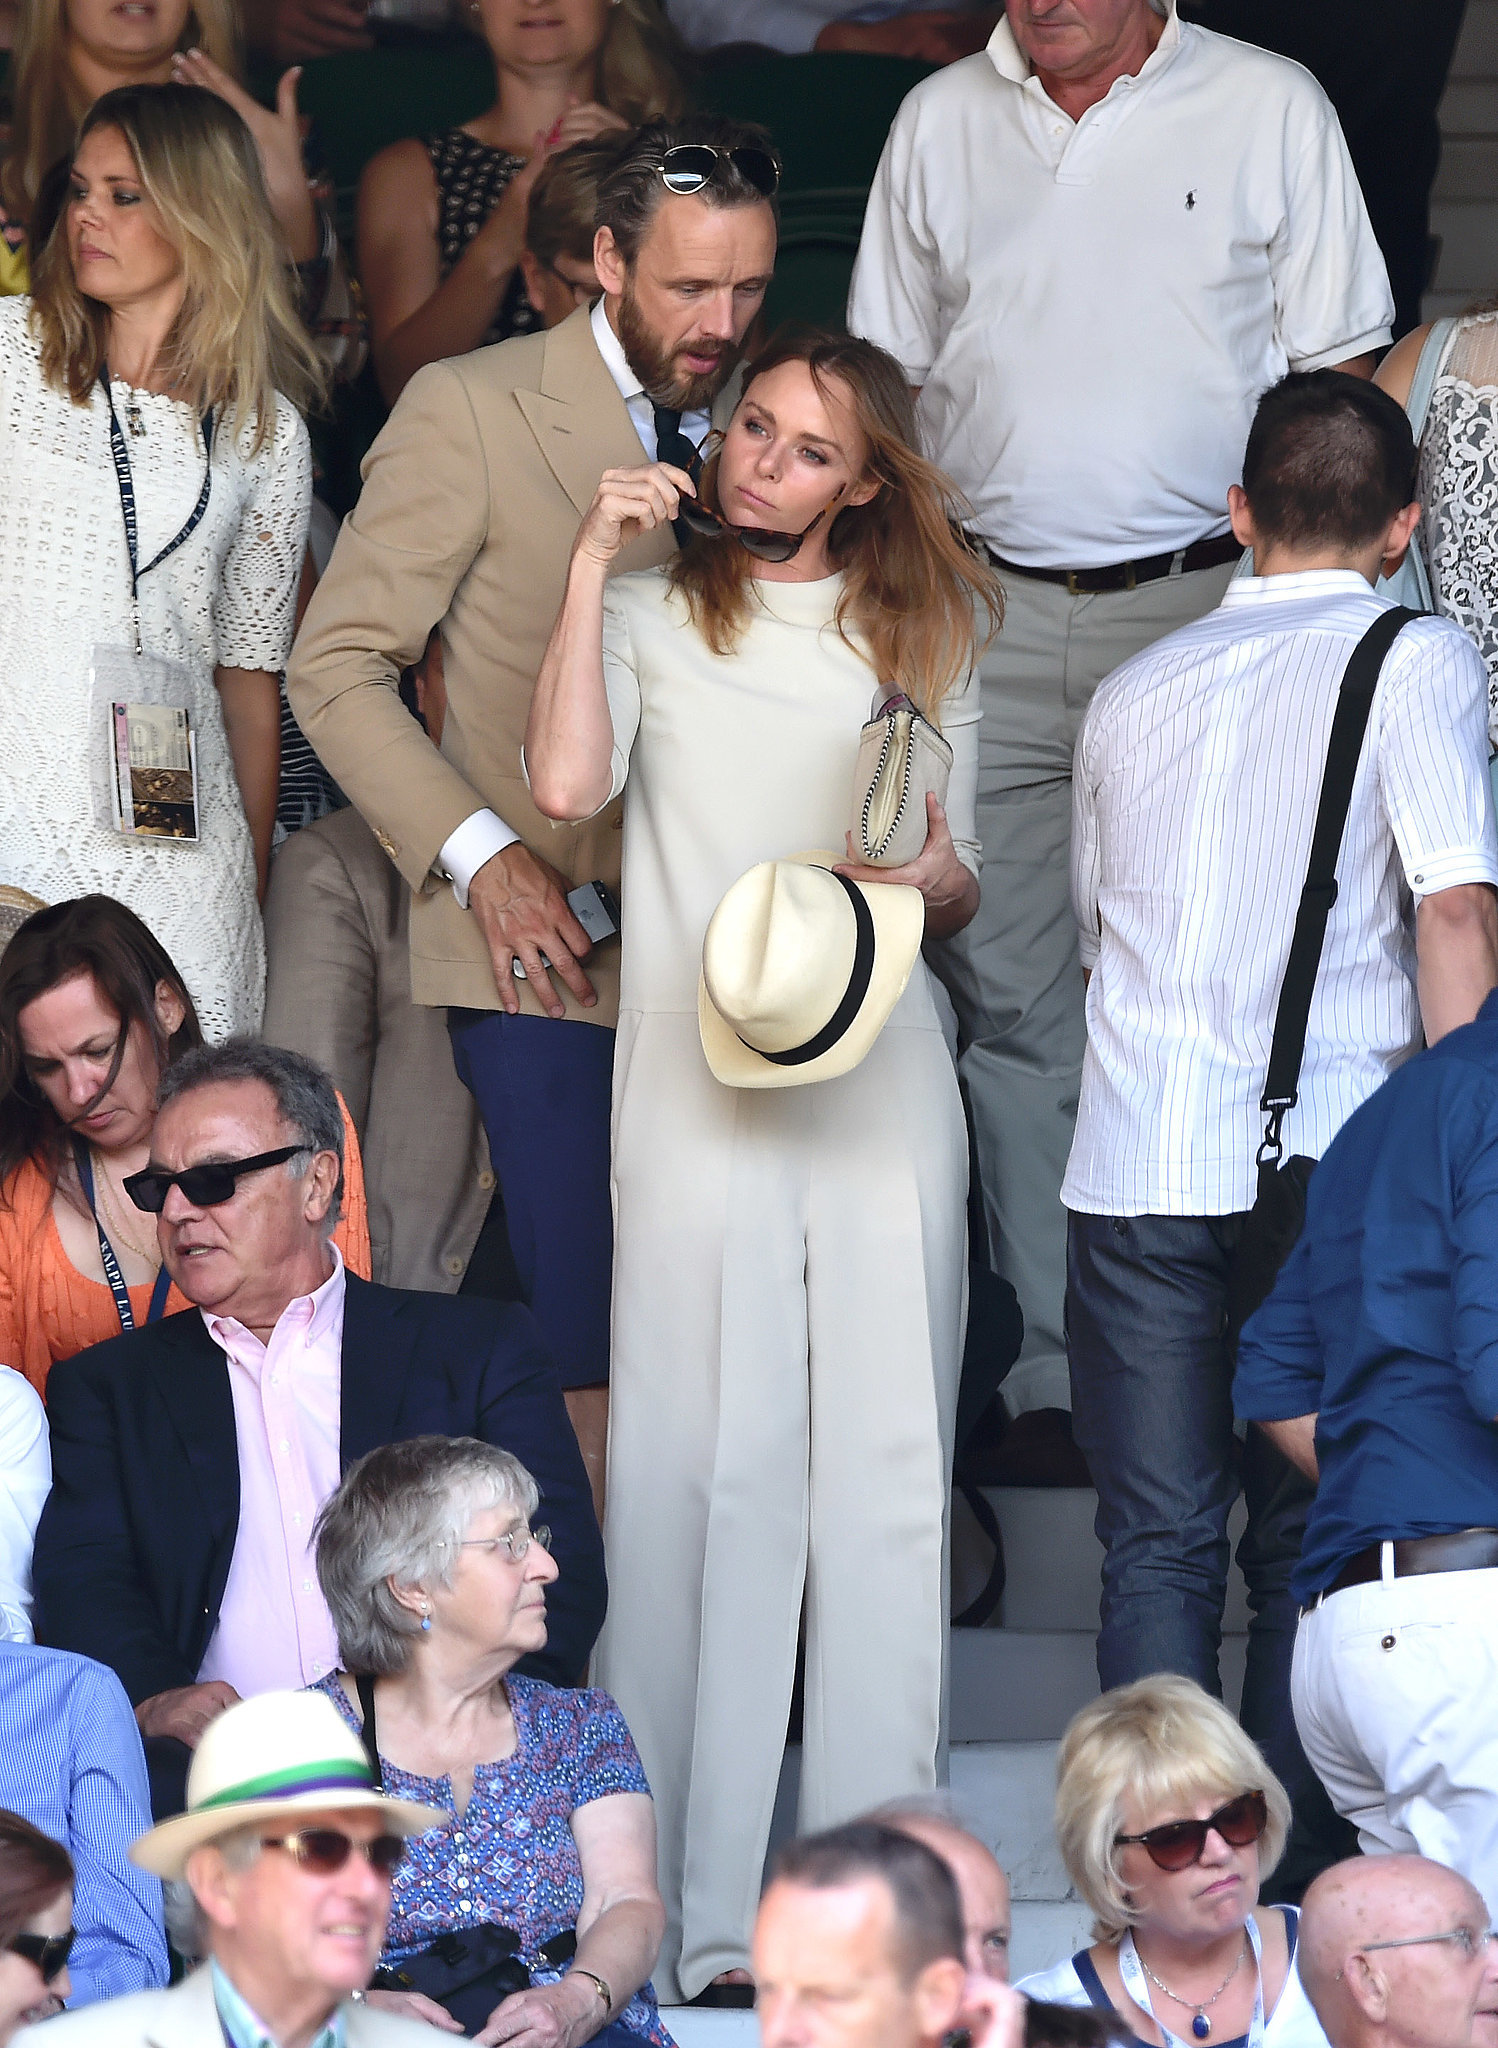 Stella McCartney and husband Alasdhair Willis turned one match into a date.